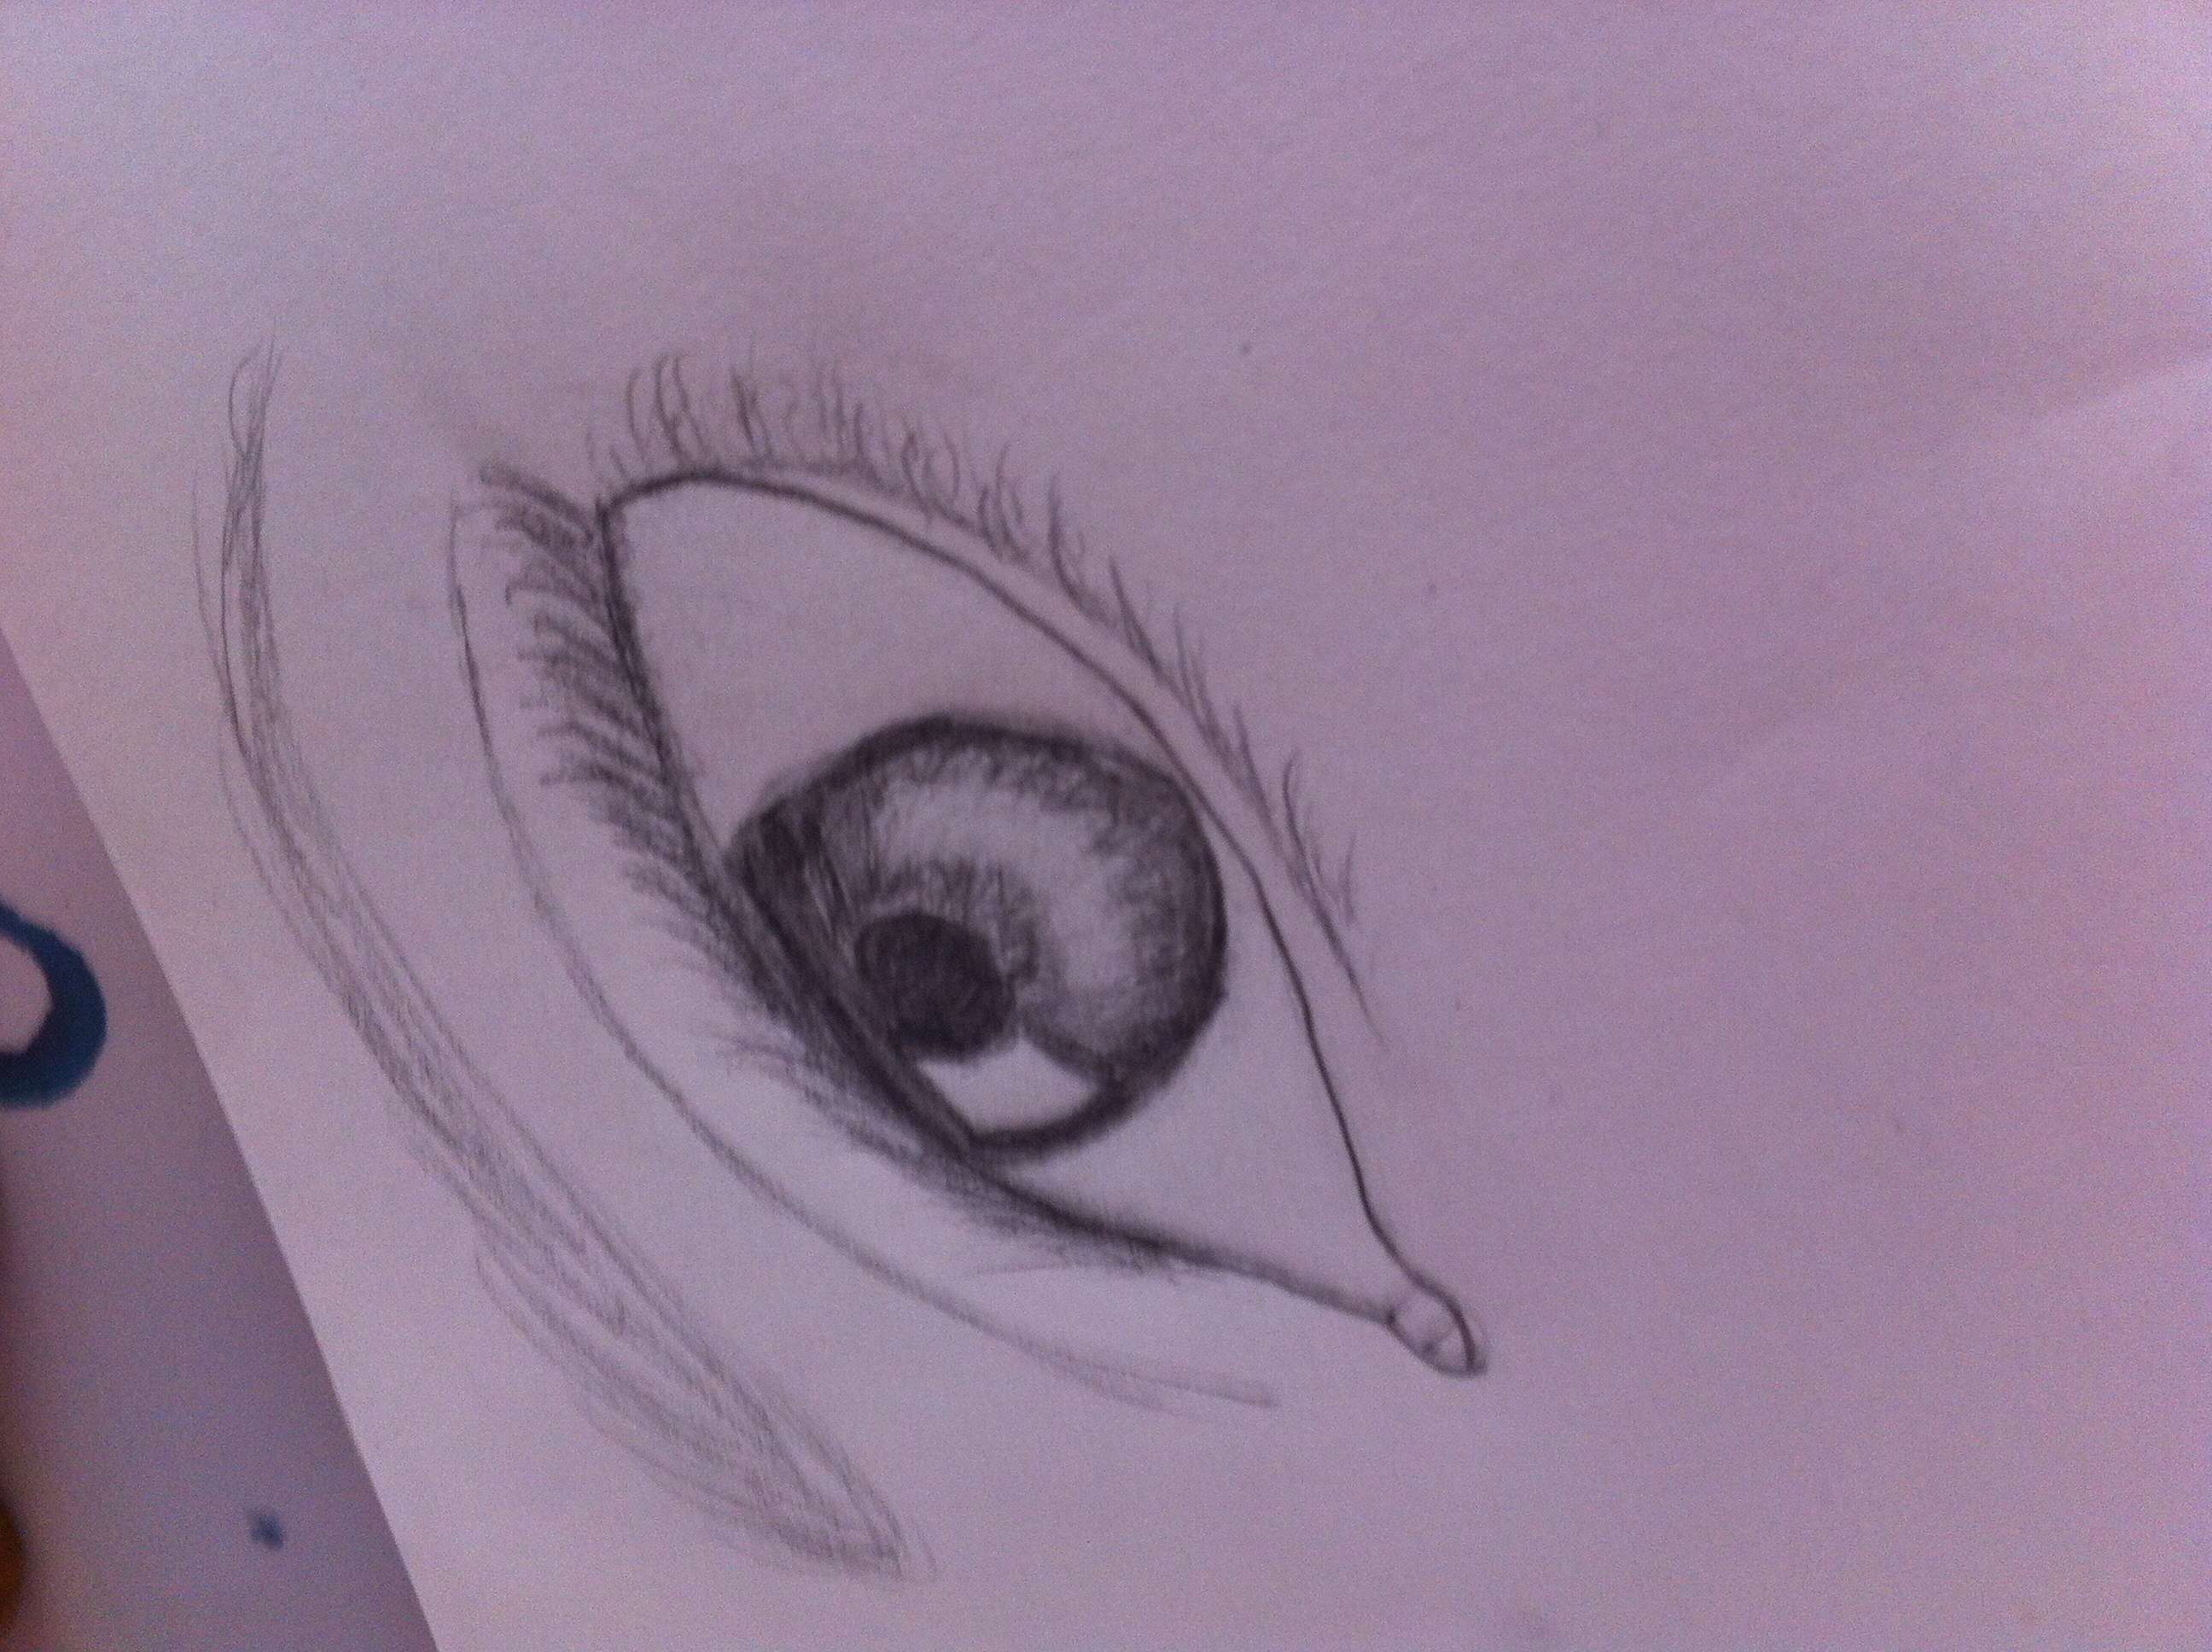 2592x1936 I Drew An Eye And Eyebrow!!!! Really Happy!!! Drawing And Other